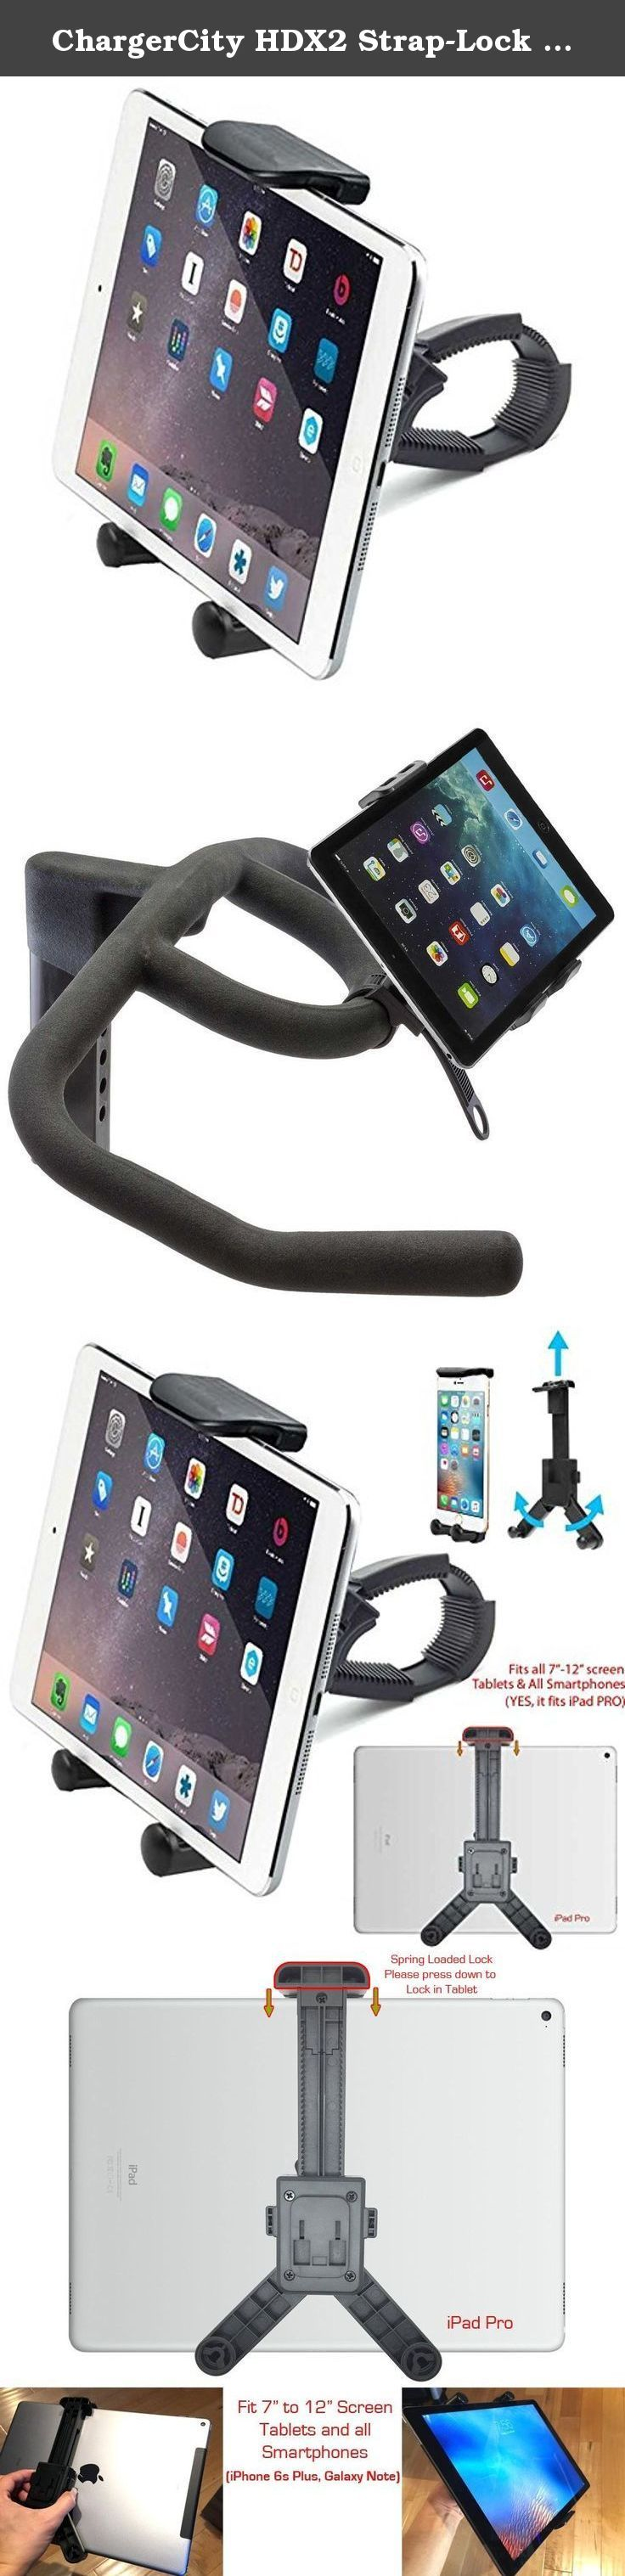 ChargerCity HDX2 Strap Lock Mount for Bicycle Treadmill Exercise Spin Bike Helm Handlebar w